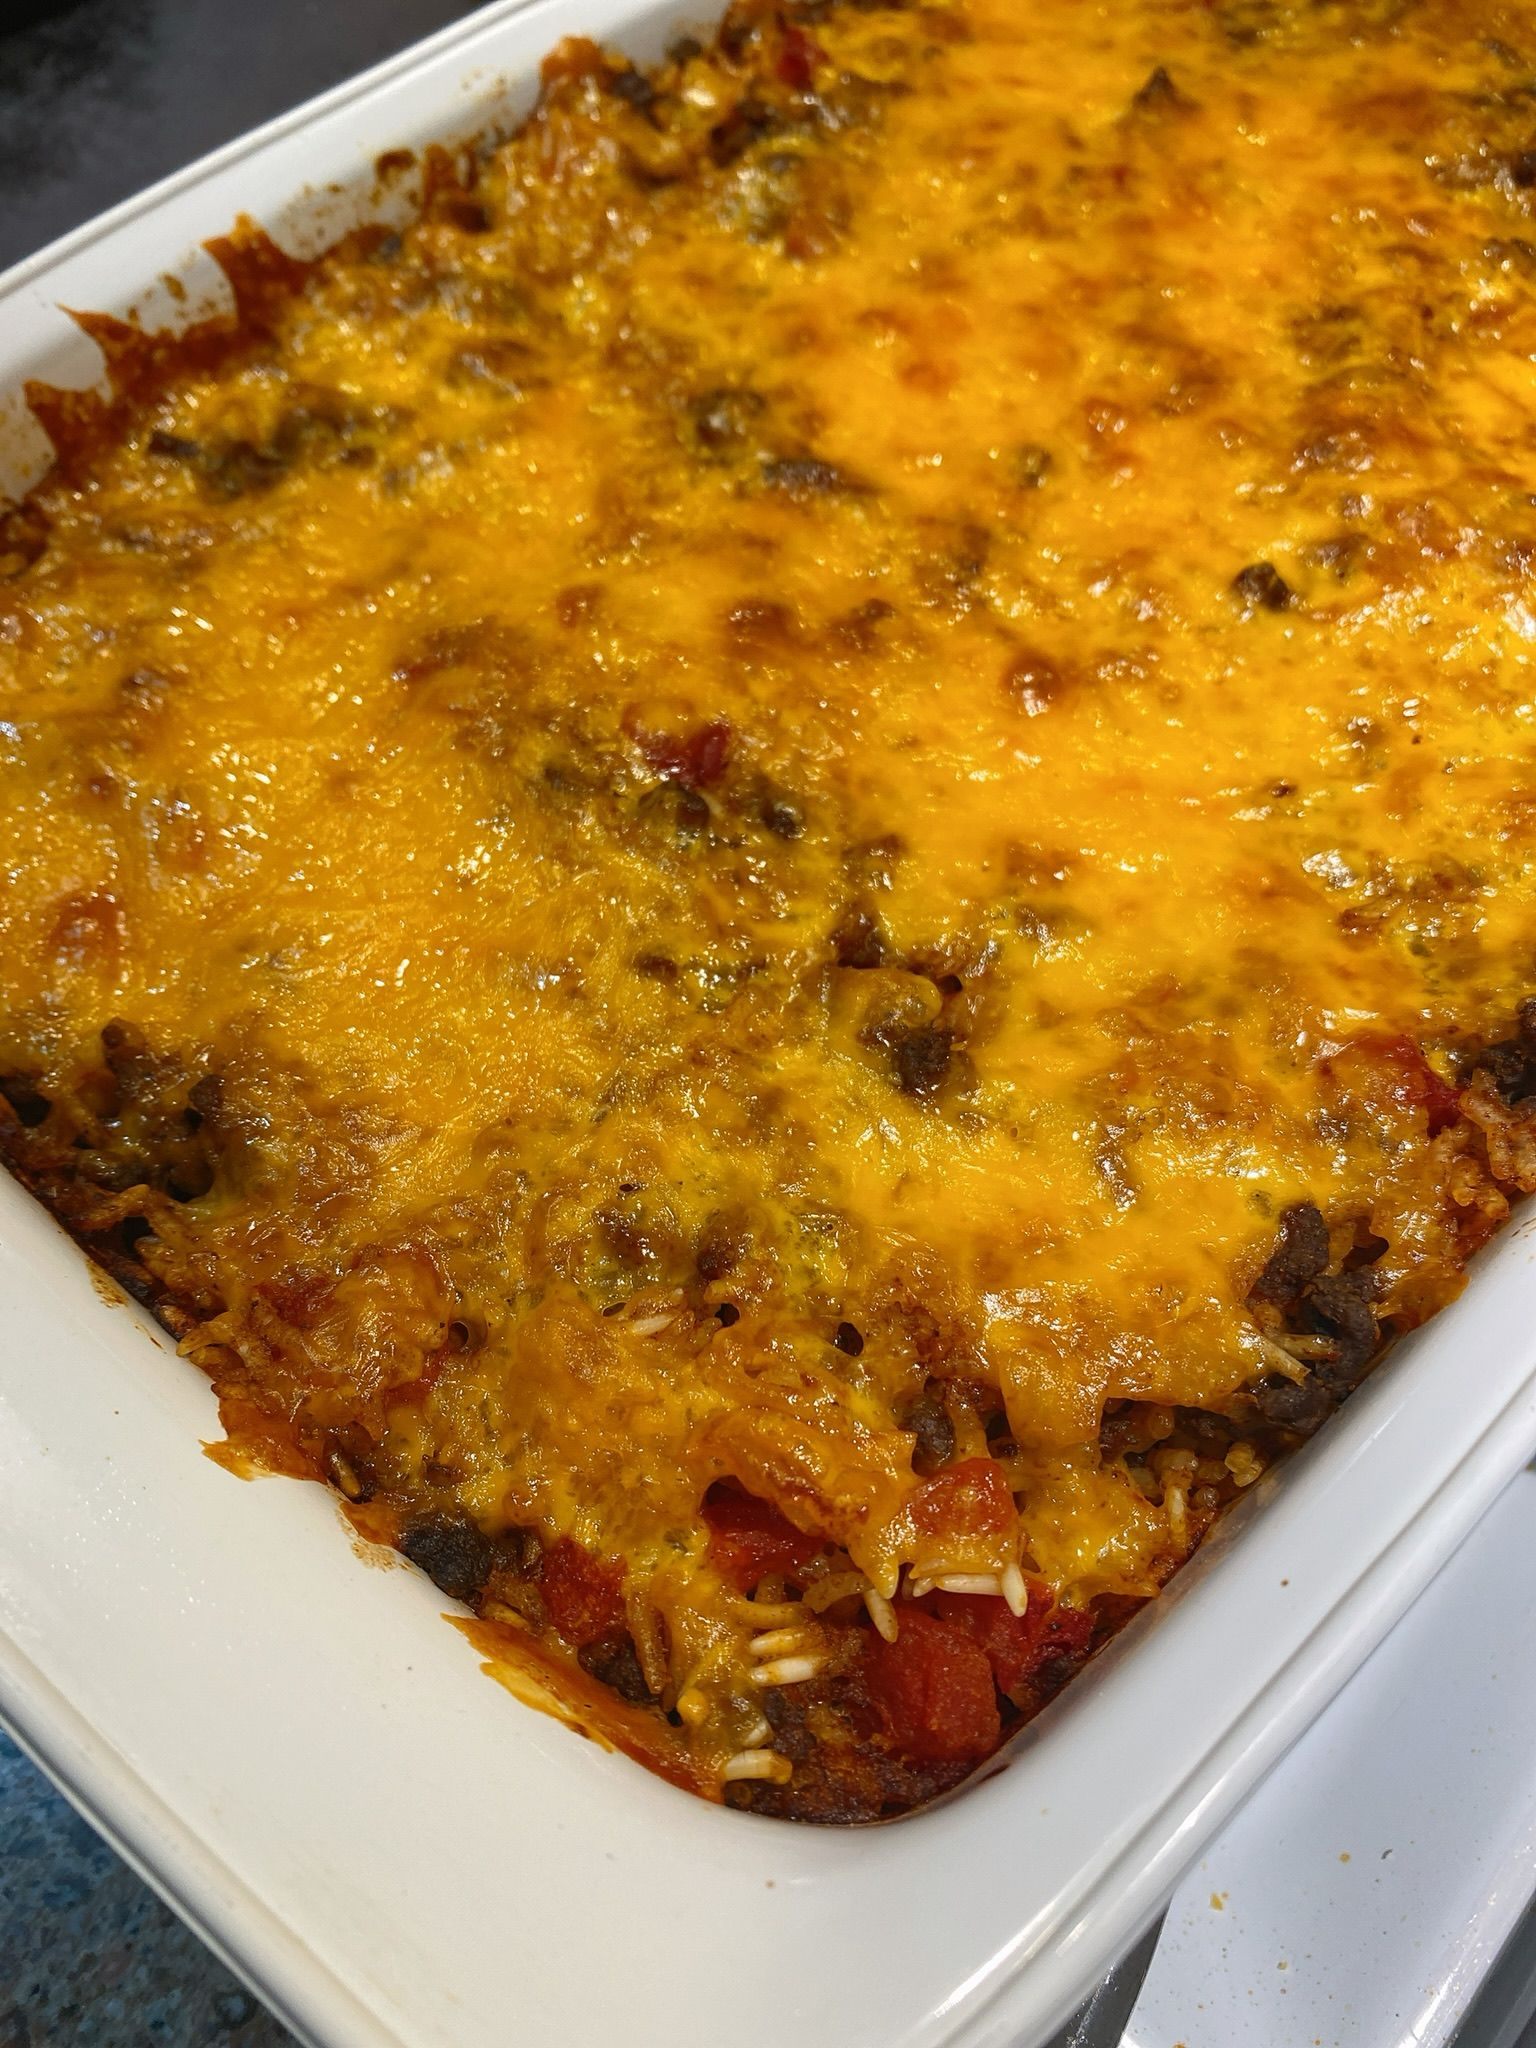 Ground Beef Taco Bake Recipe In 2020 Ground Beef Tacos Recipes Ground Beef